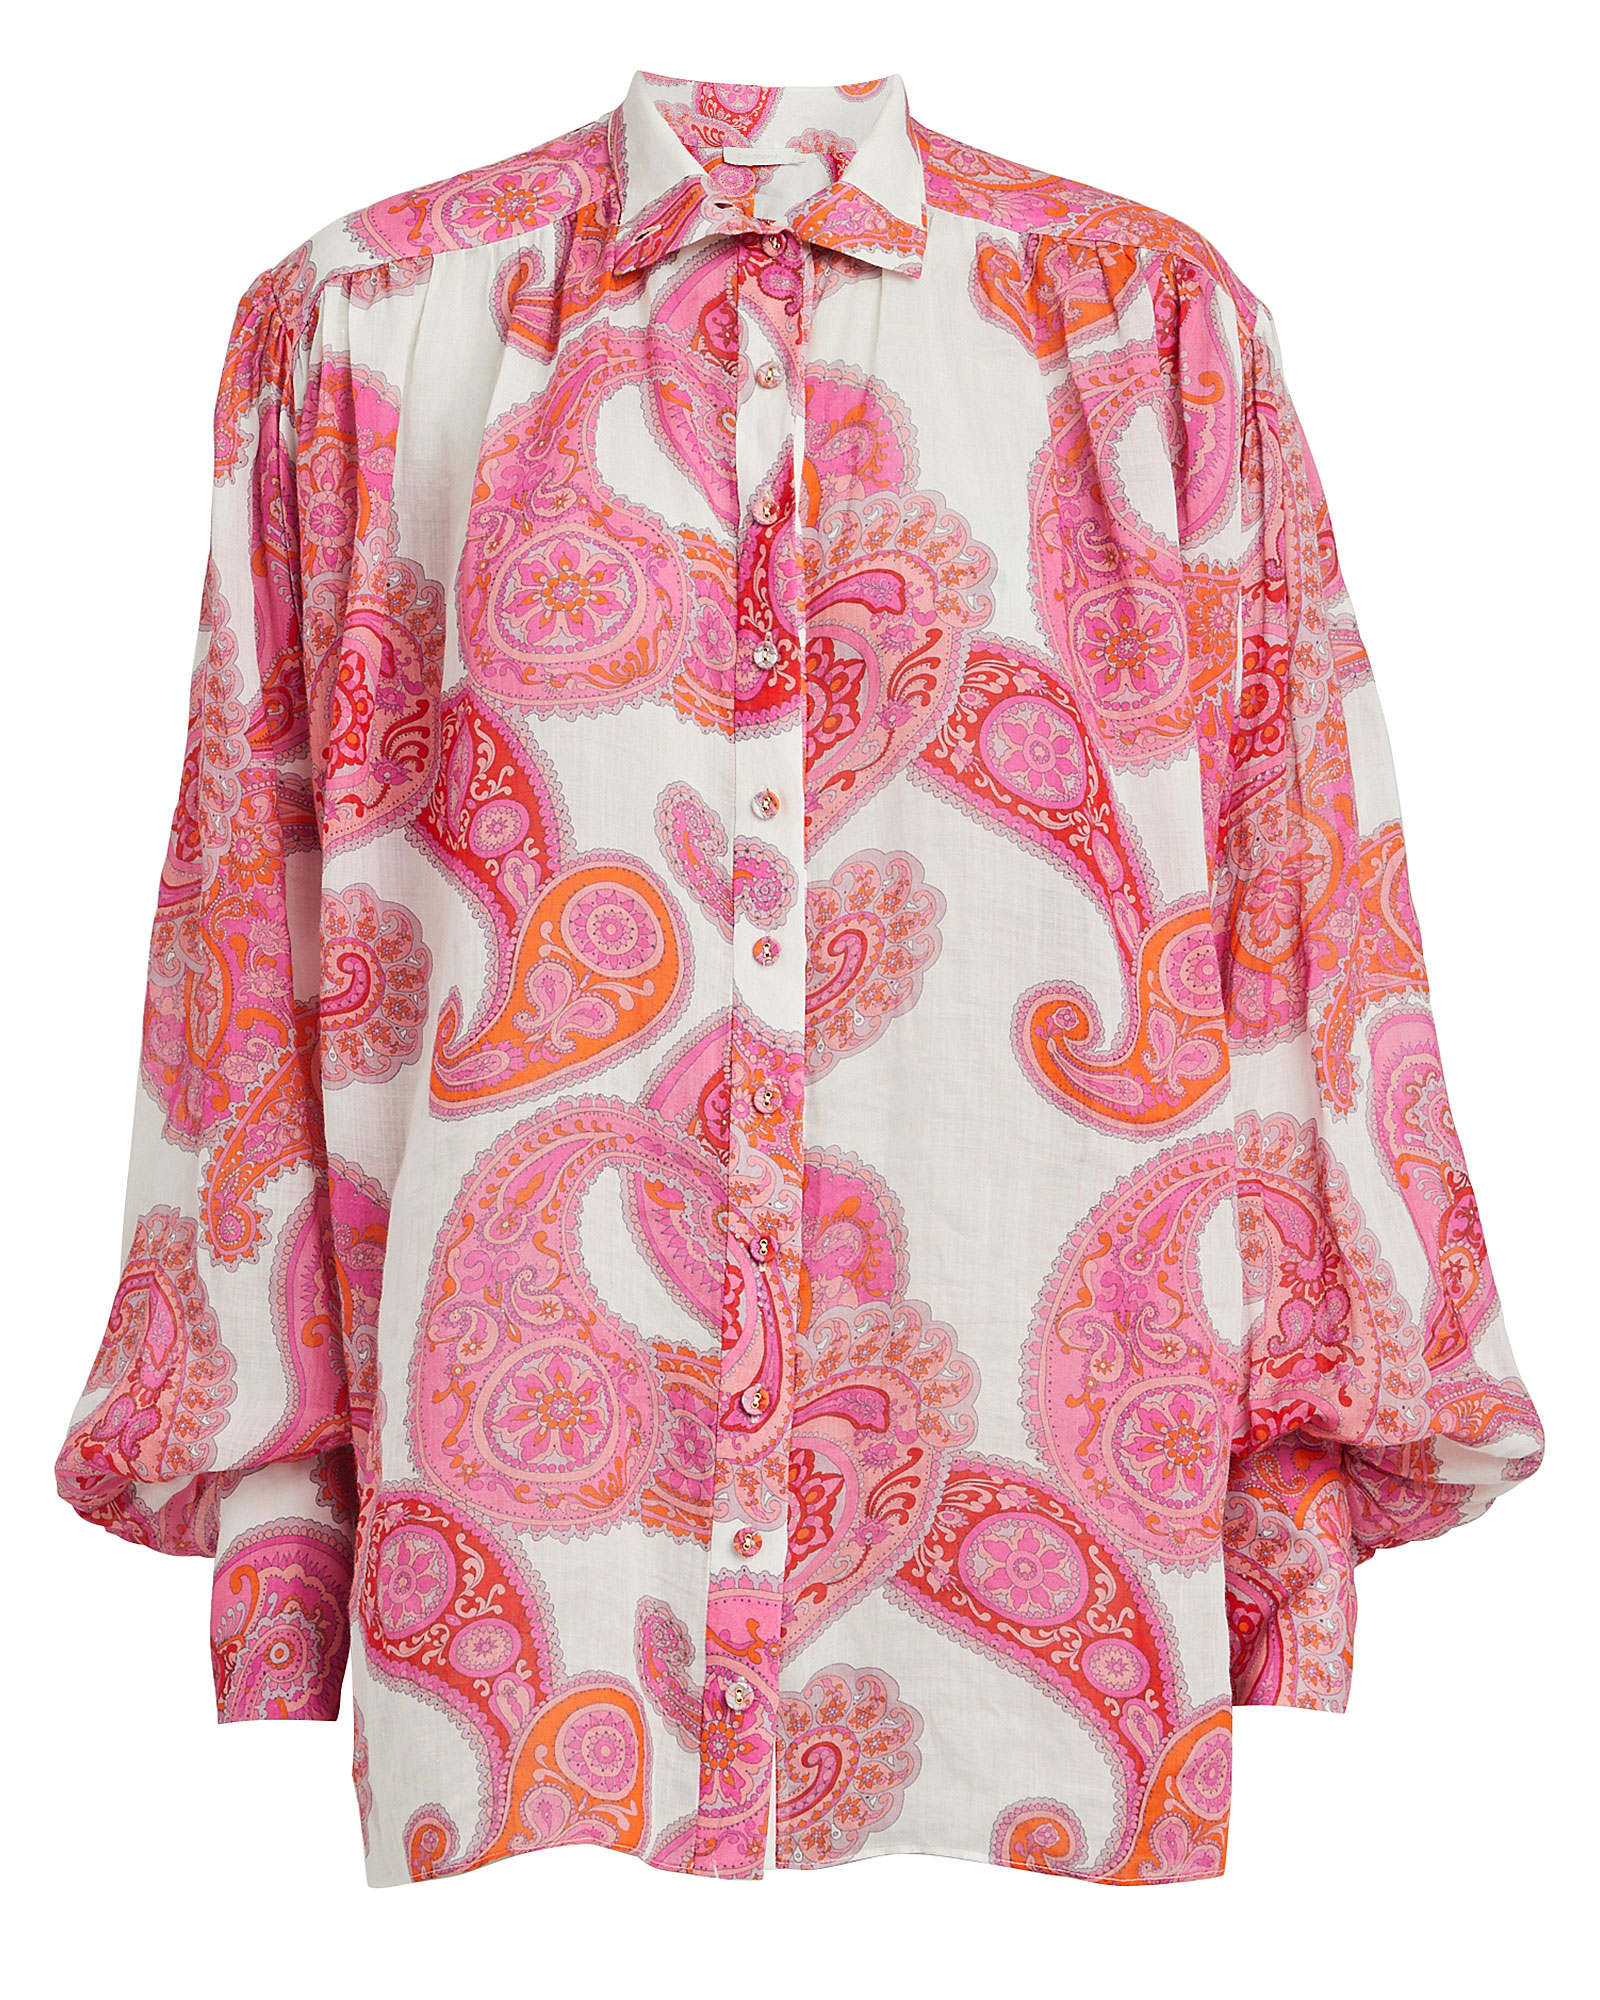 Zimmermann Tops ZIMMERMANN PEGGY PAISLEY PRINT BLOUSE